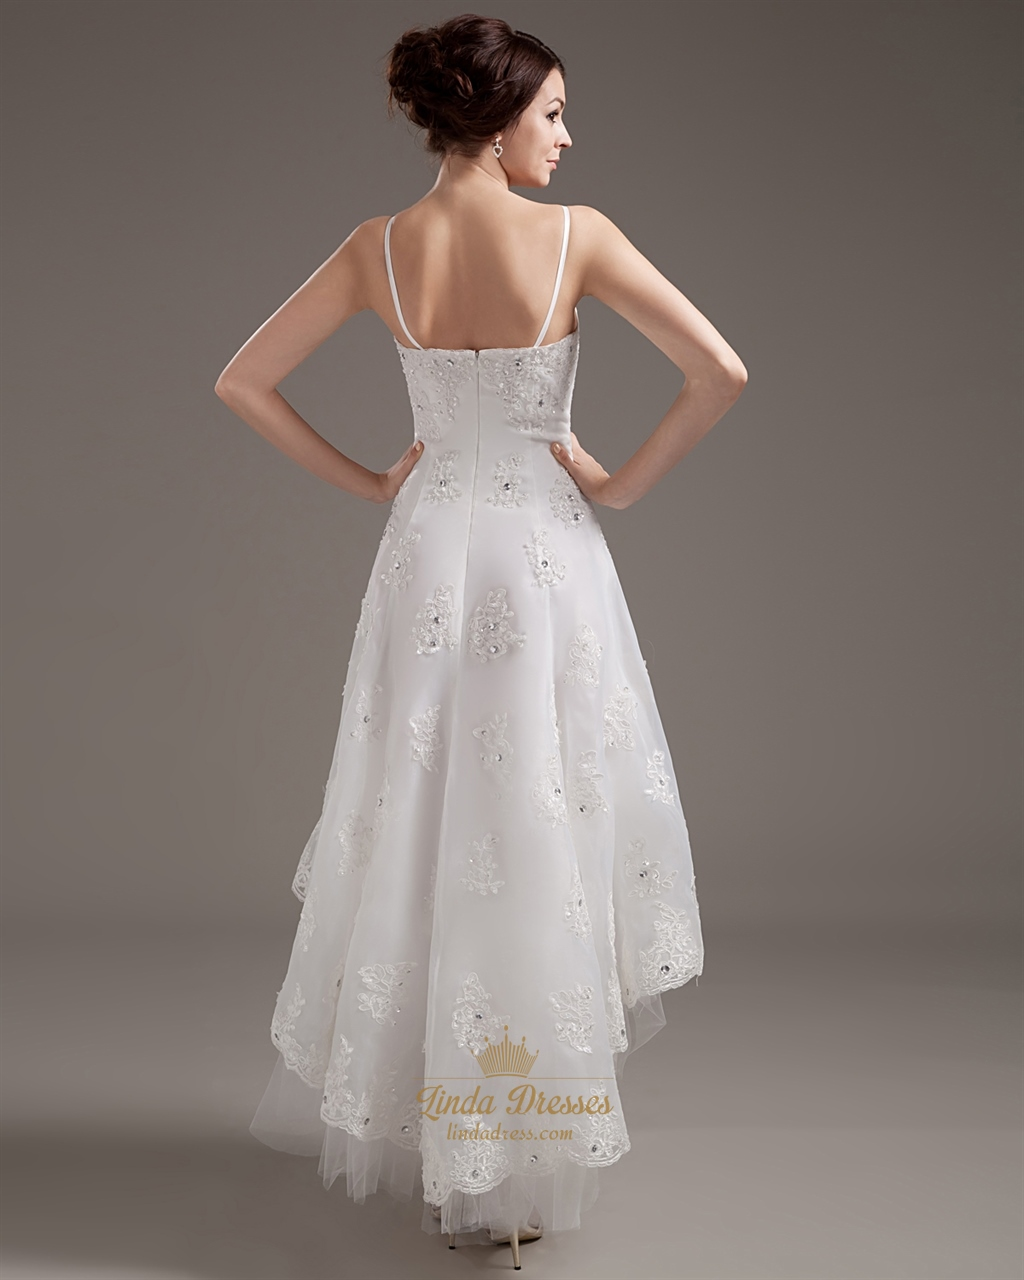 list detail plus size high low wedding dresses hi low wedding dress High Low Plus Size Wedding Dresses